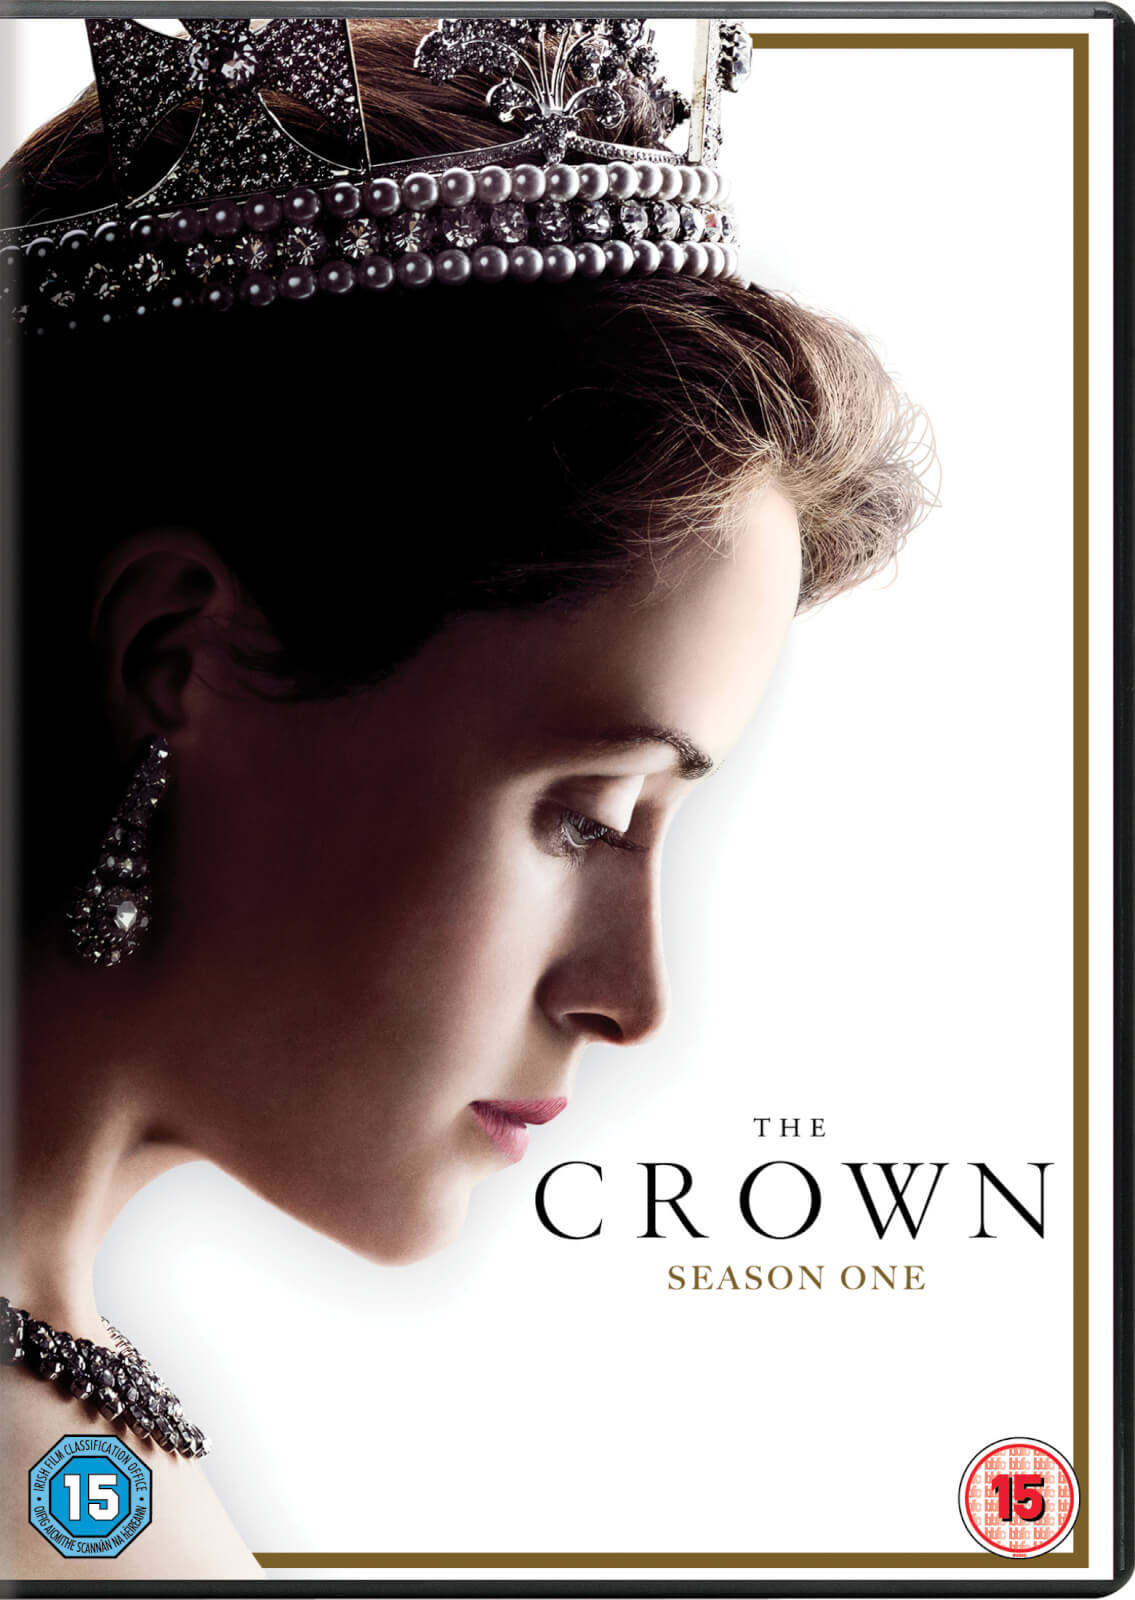 The Crown - Season 1